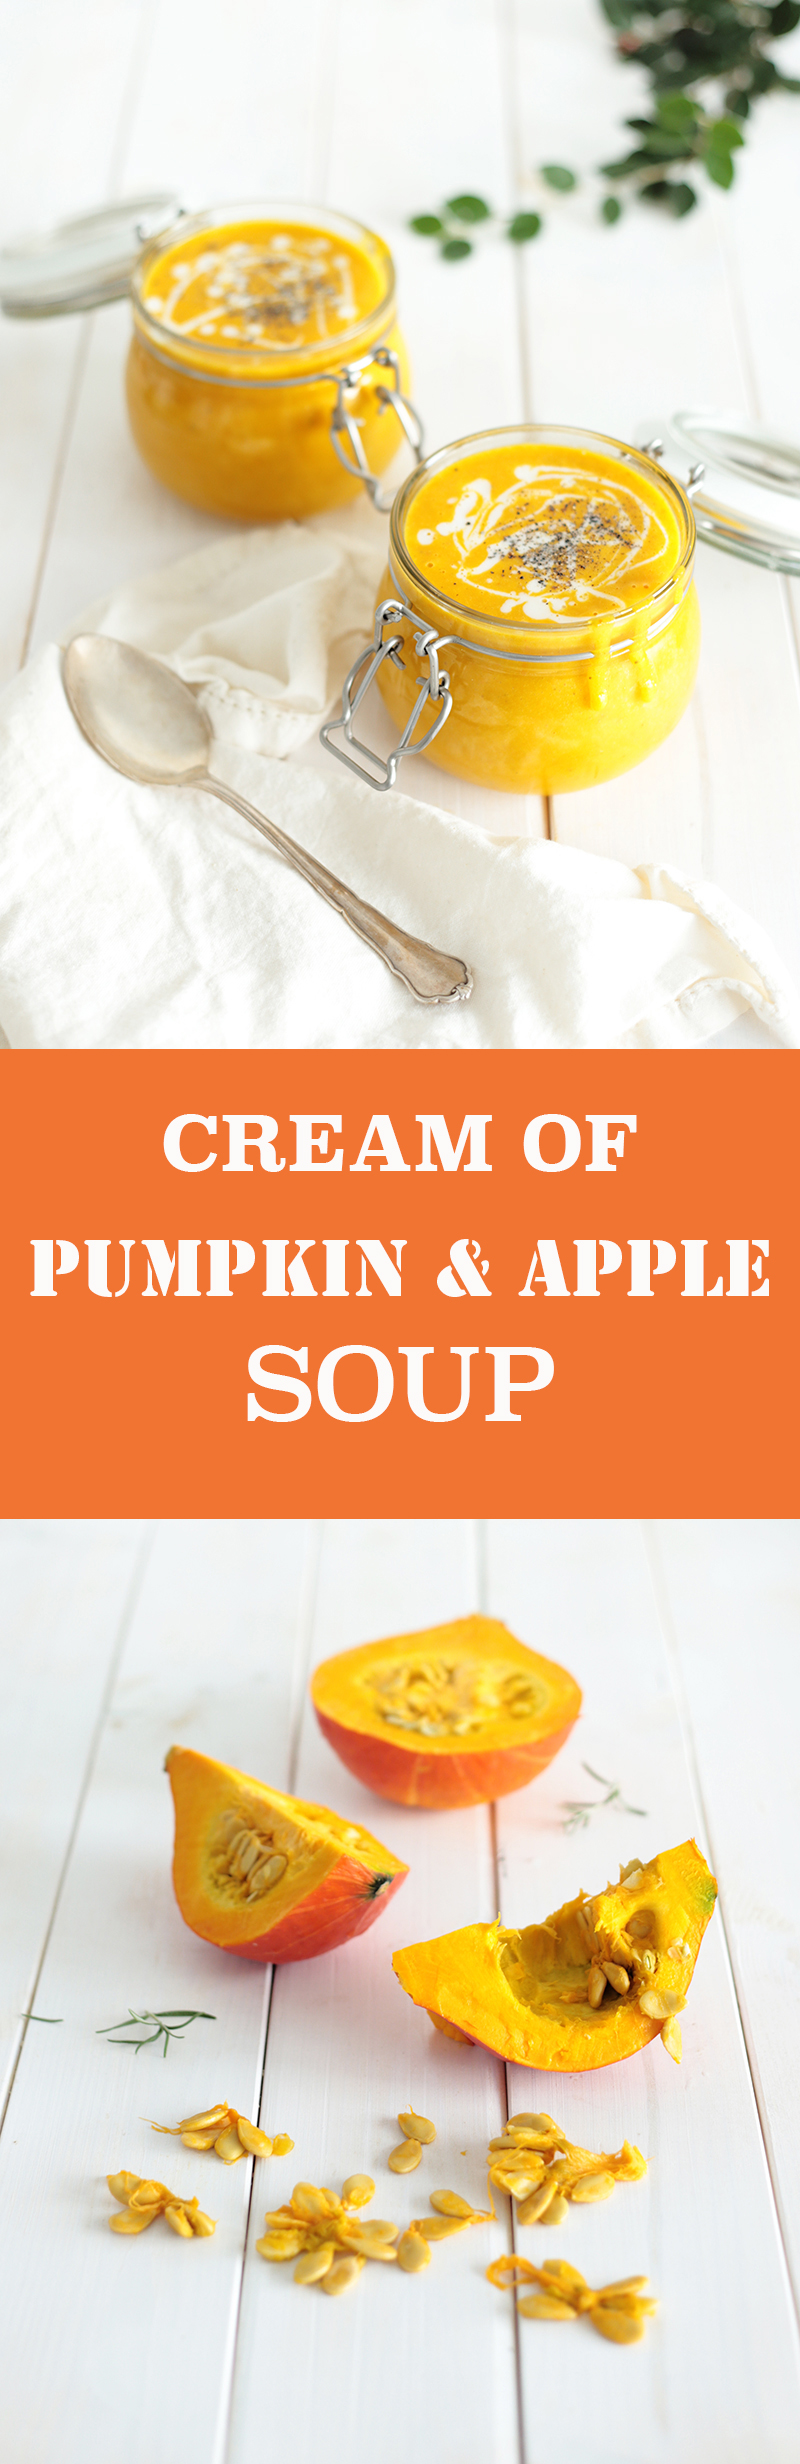 Cream of Pumpkin and Apple Soup